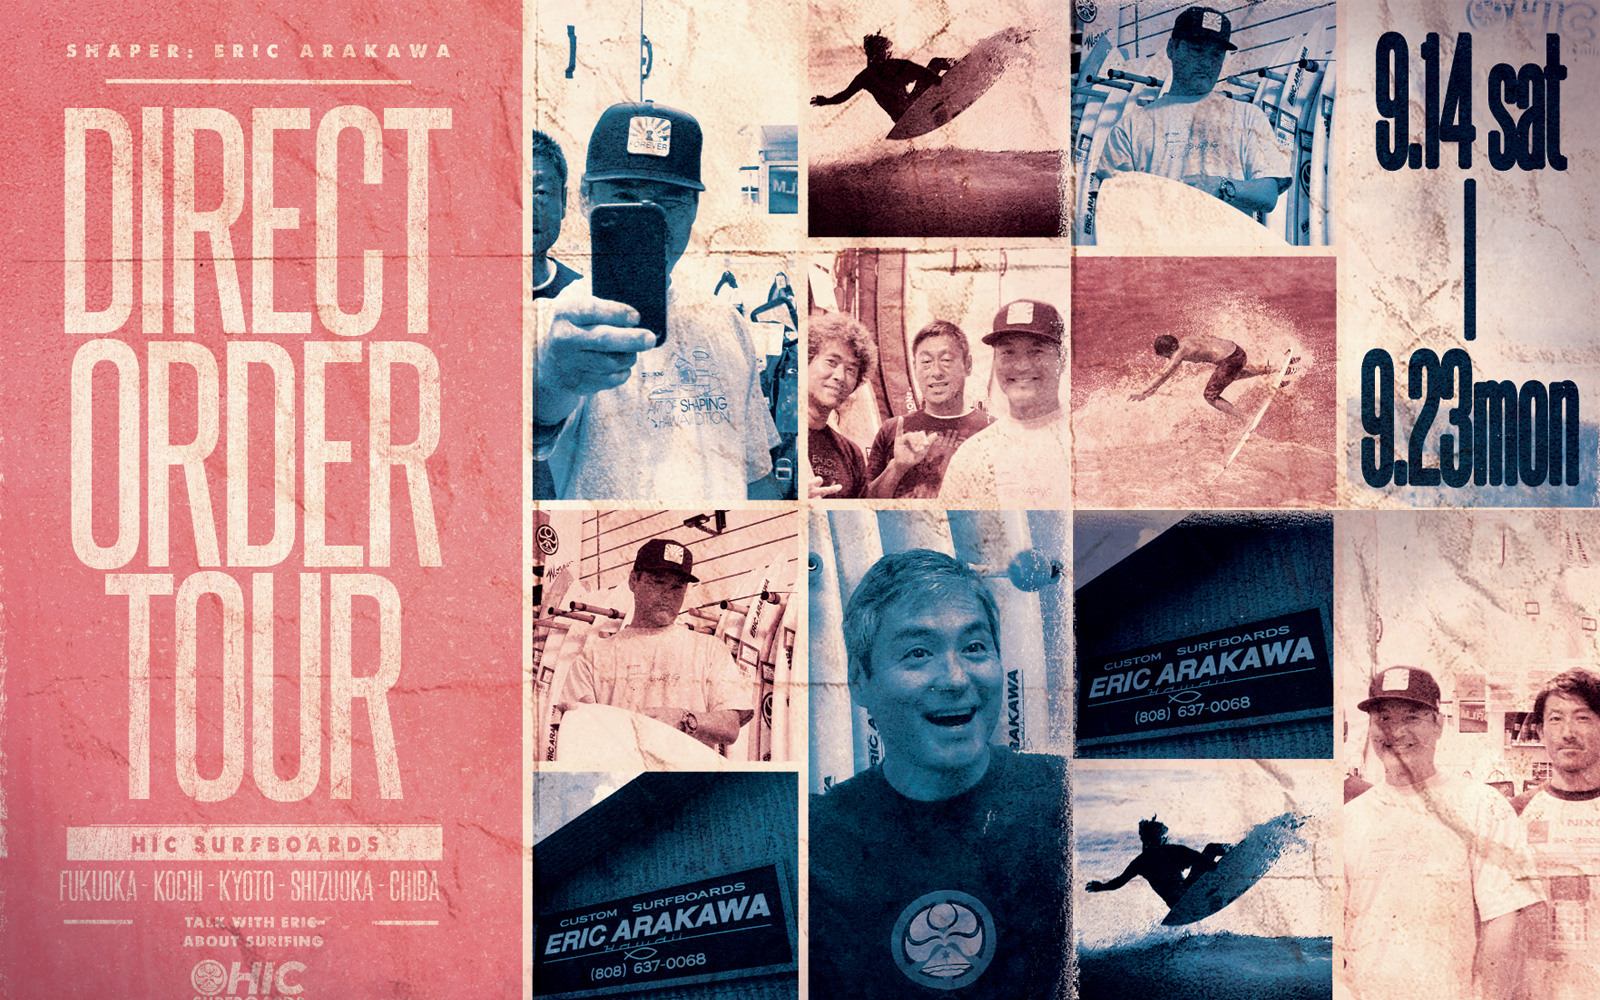 ERIC ARAKAWA DIRECT ORDER TOUR 決定!